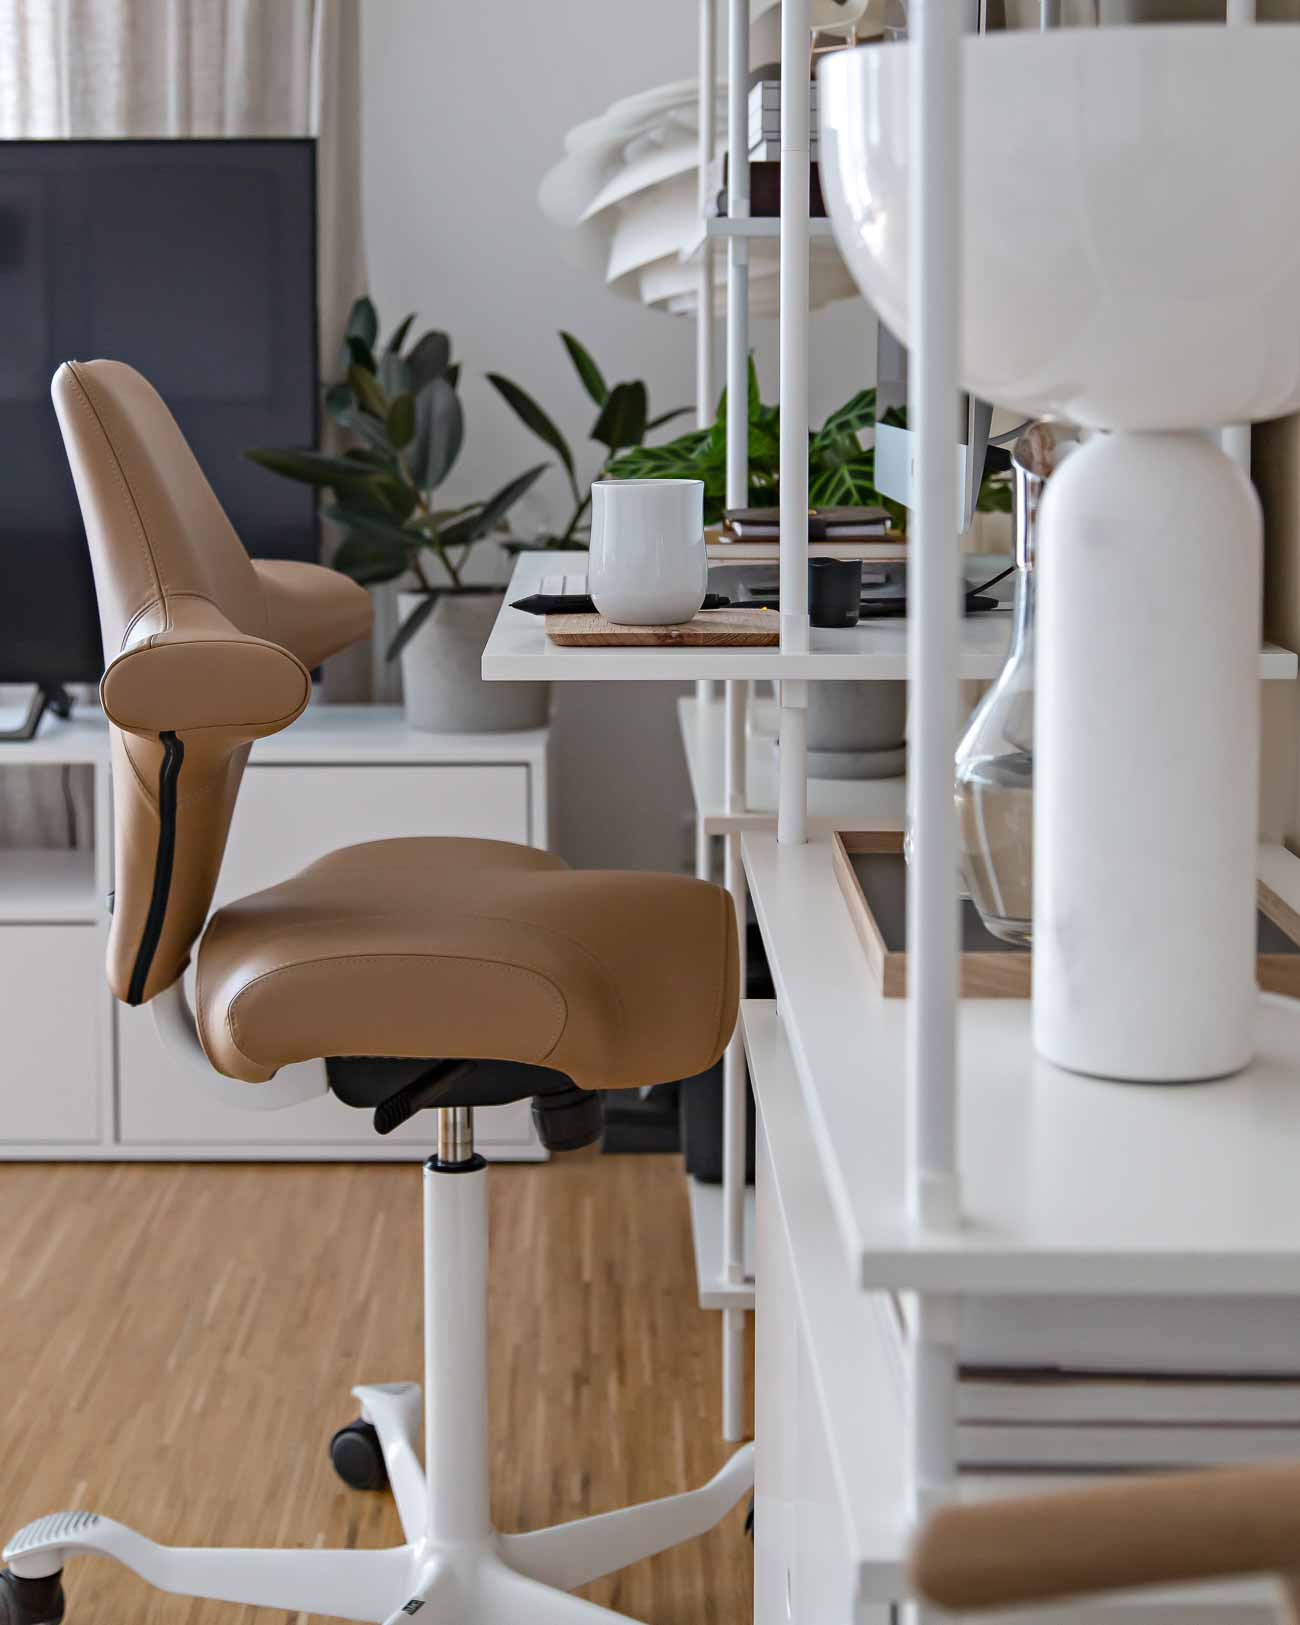 HÅG Capisco in brown paloma camel leather sideways view at home office desk